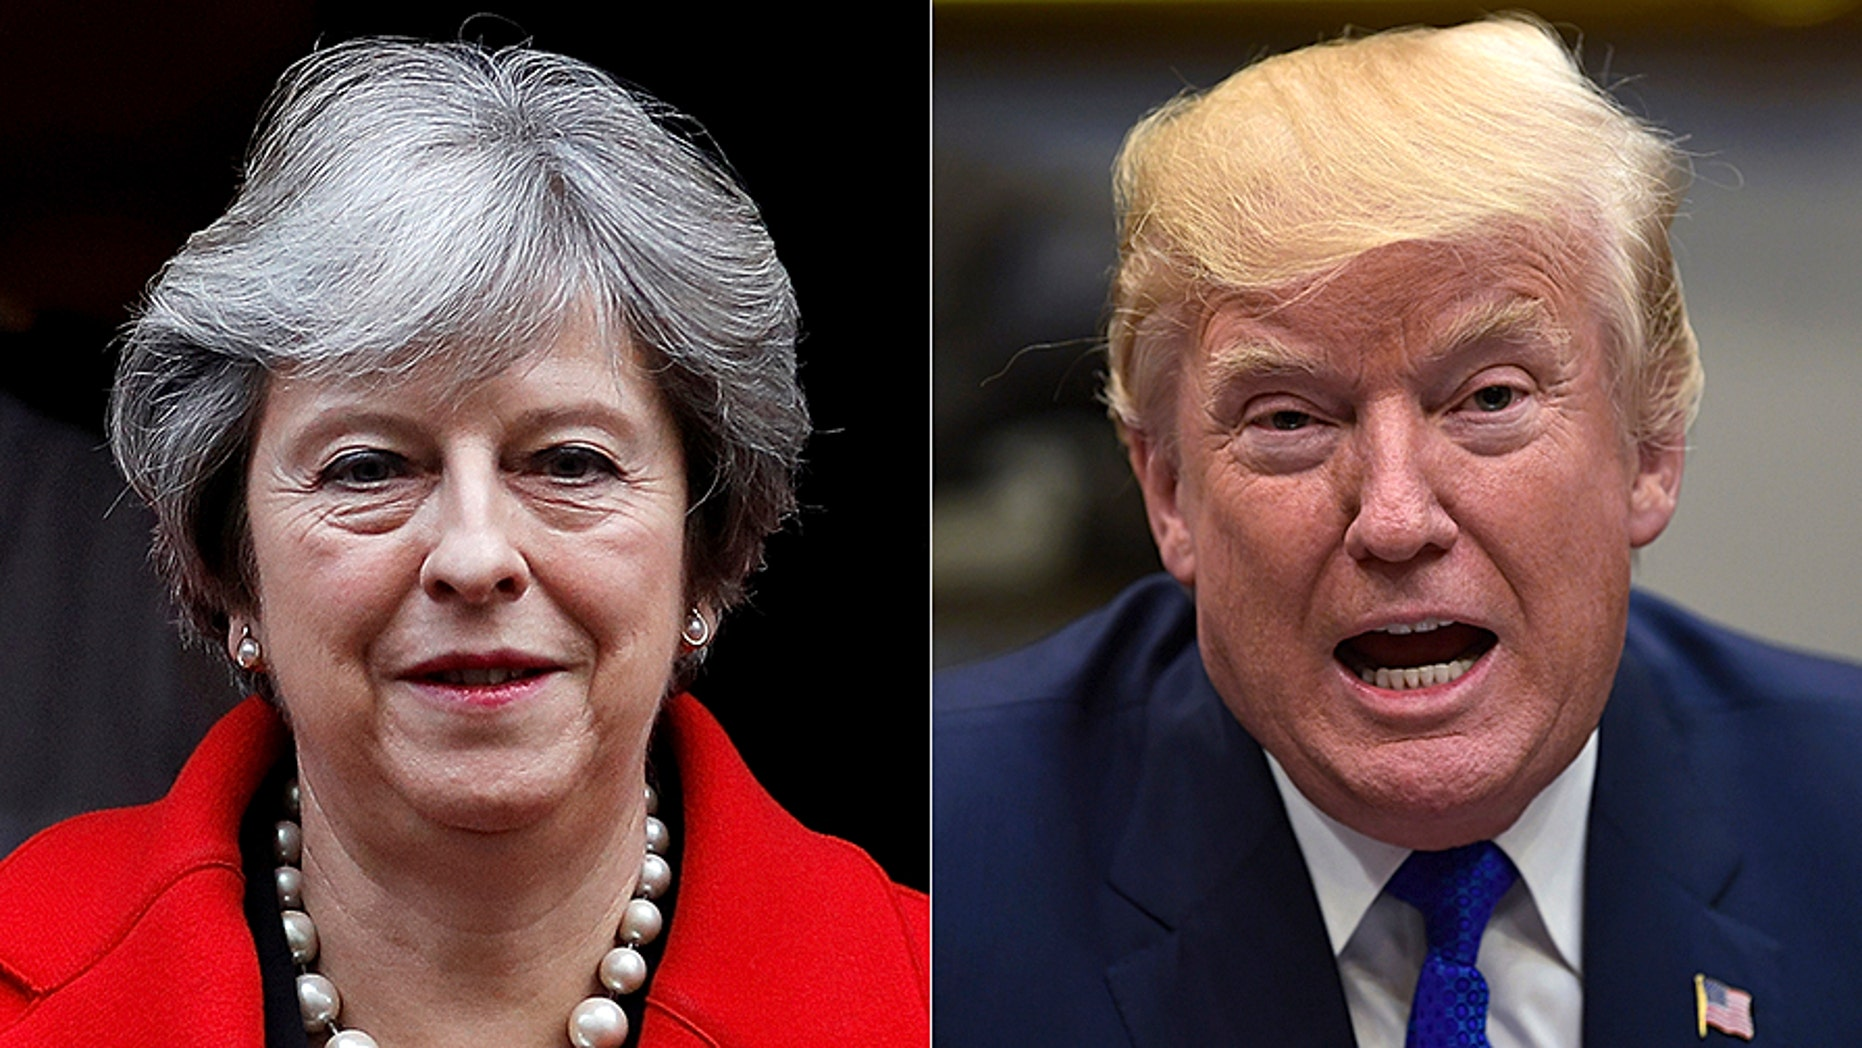 British Prime Minister Theresa May, left, condemned President Trump, right, for sharing anti-Muslim posts.